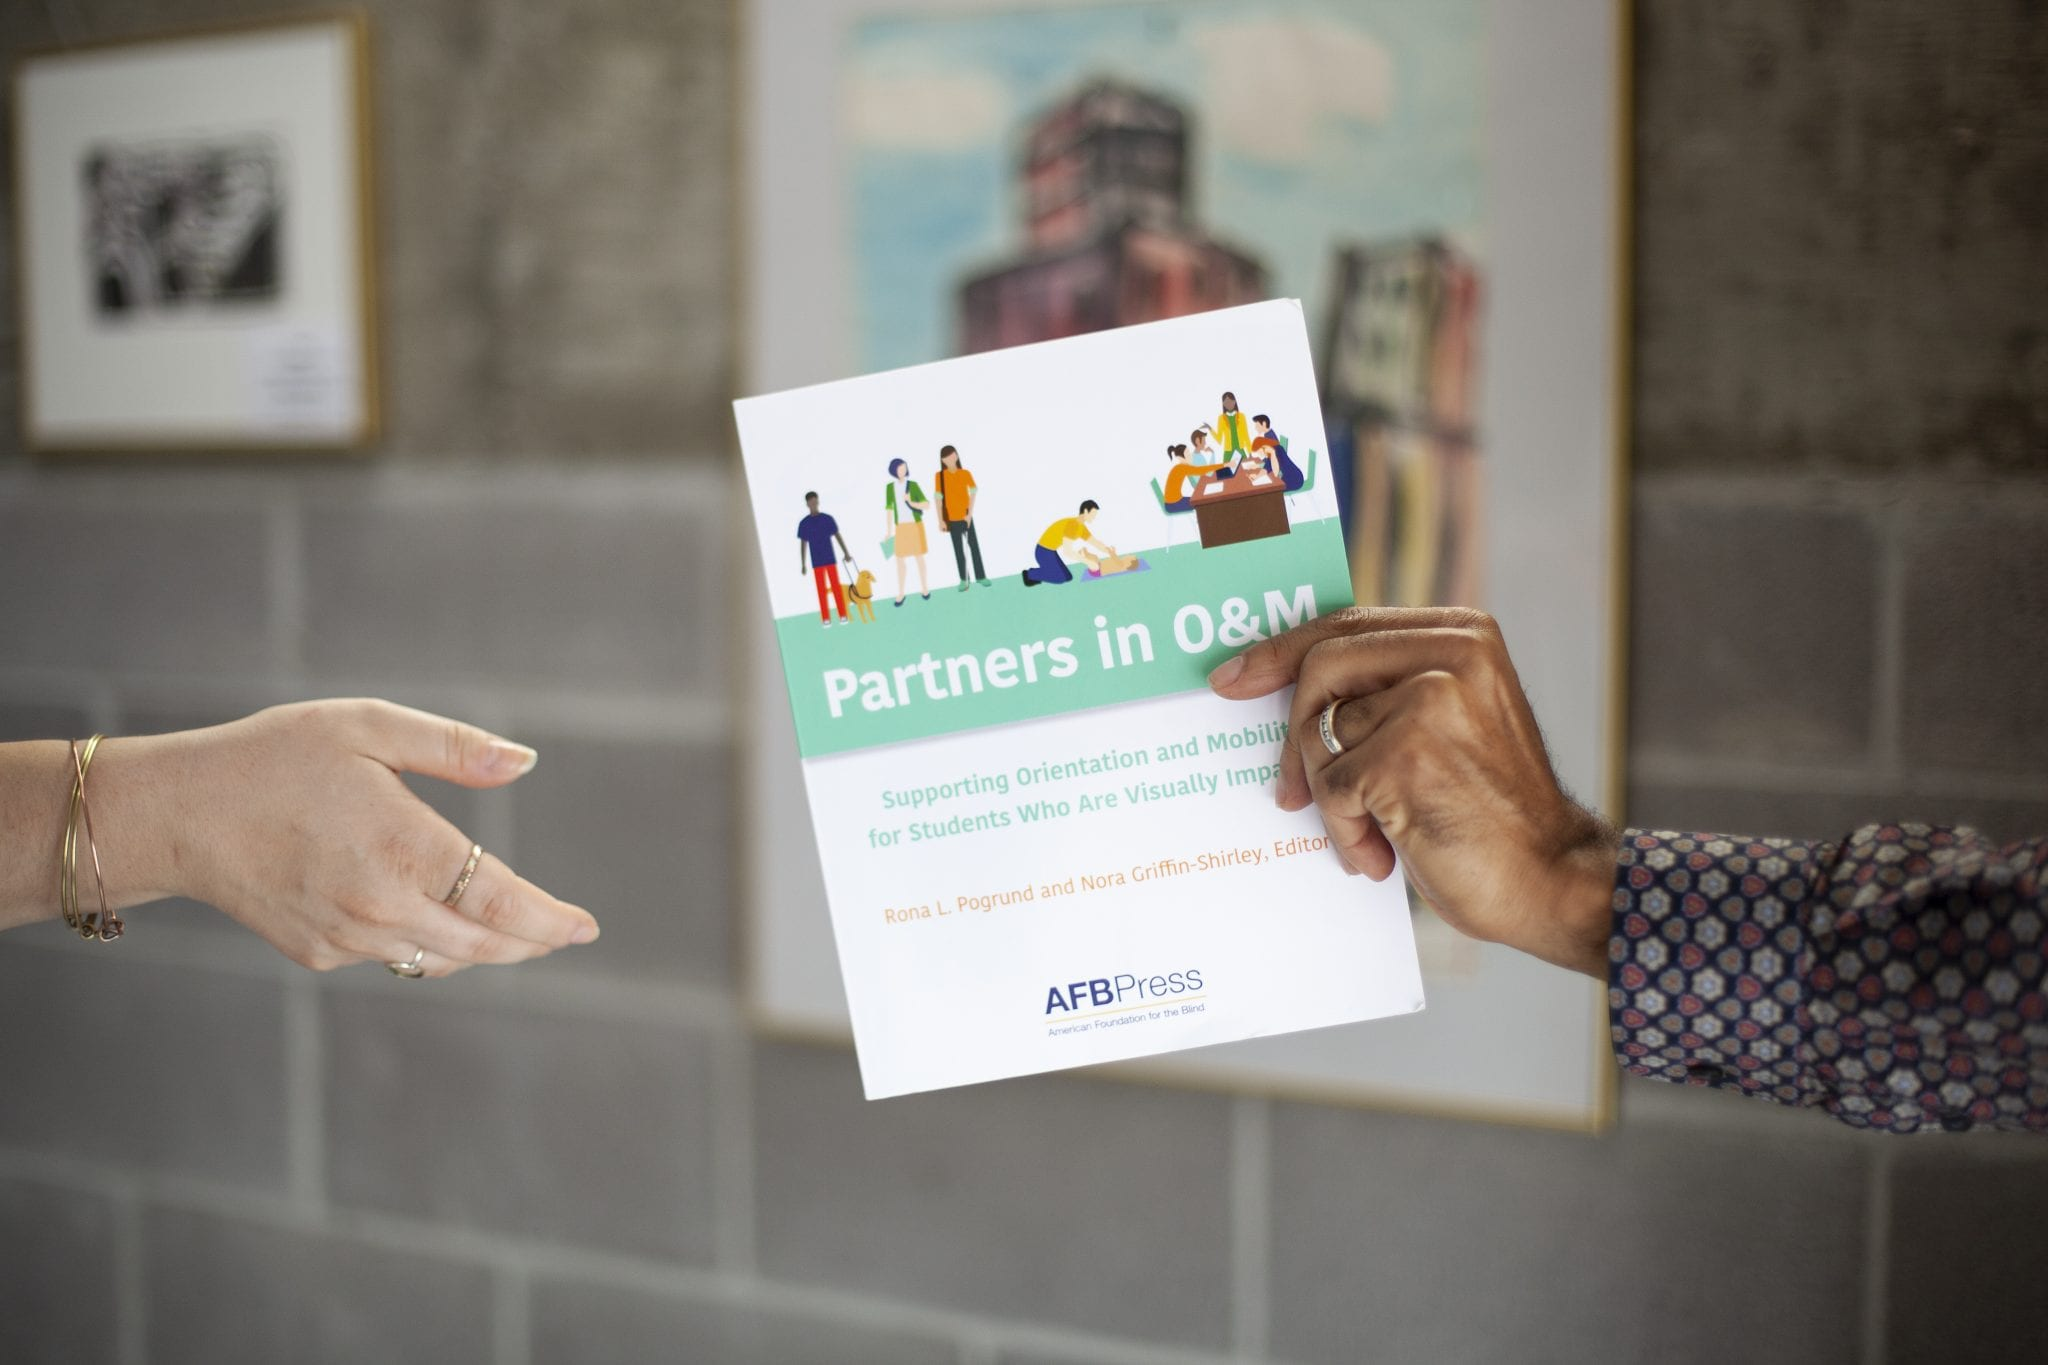 Two hands exchanging a card promoting AFB Press' Partners in O&M book